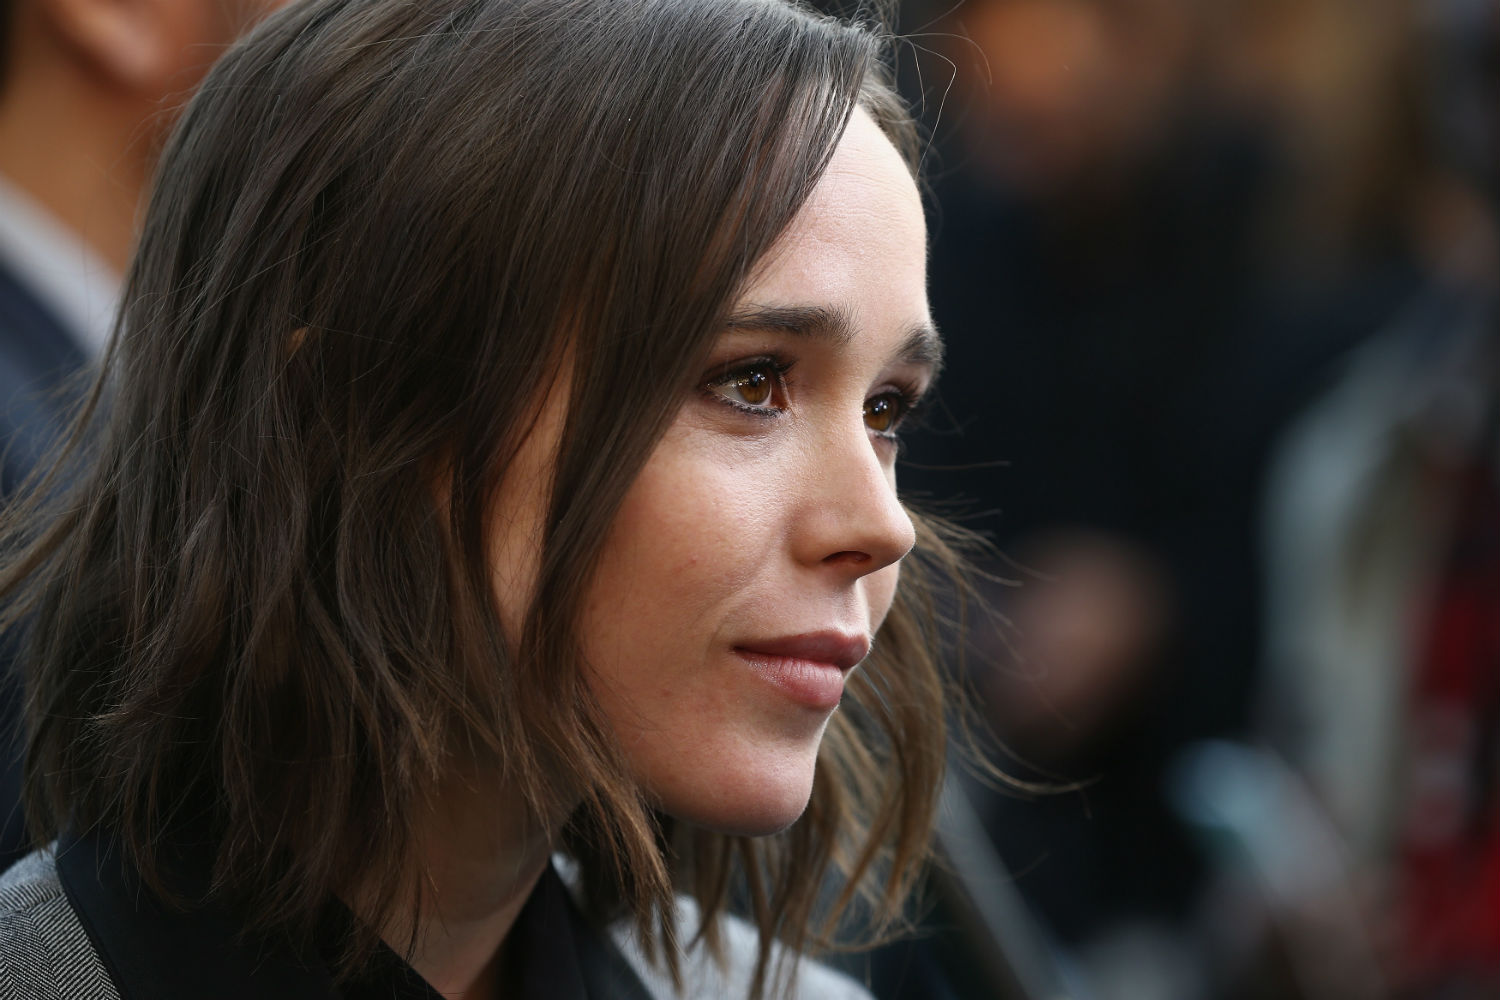 Ellen Page rallies support for LGBT rights during stirring ... Ellen Page